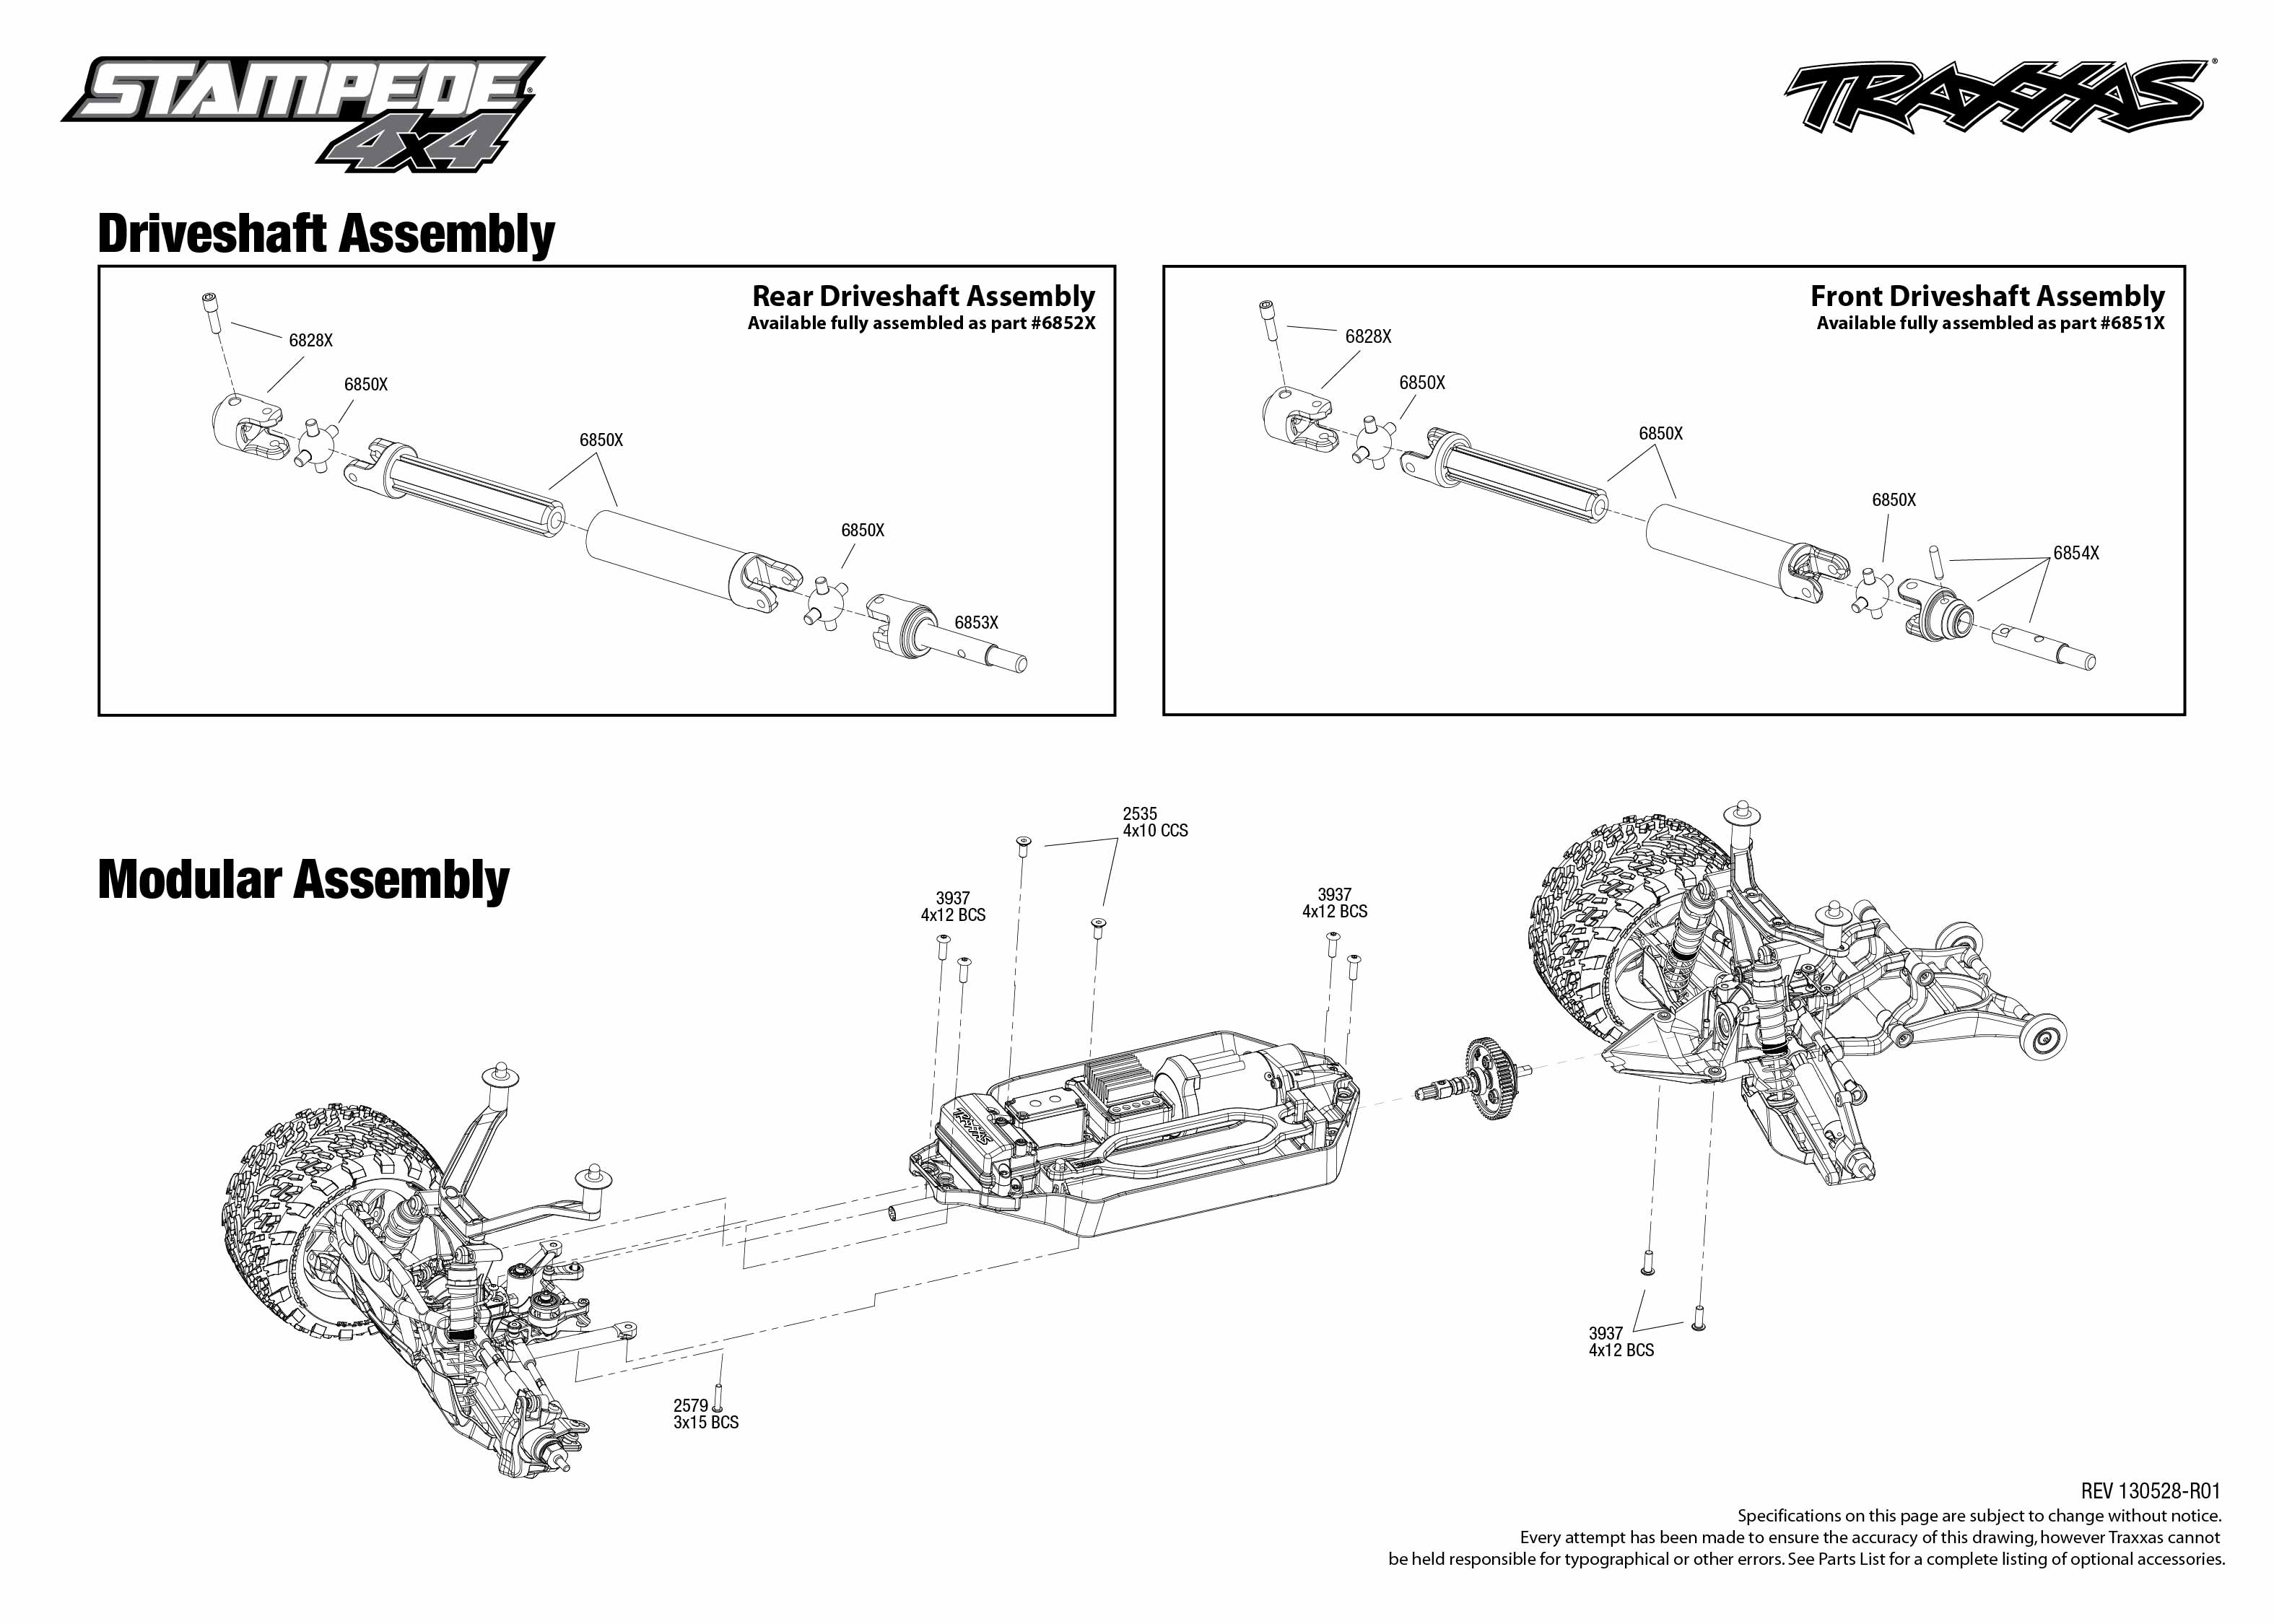 Traxxas Stampede Vxl Diagram Engine Control Wiring Gearing Chart Slash Speed 6708 Driveshaft Exploded View Rh Com